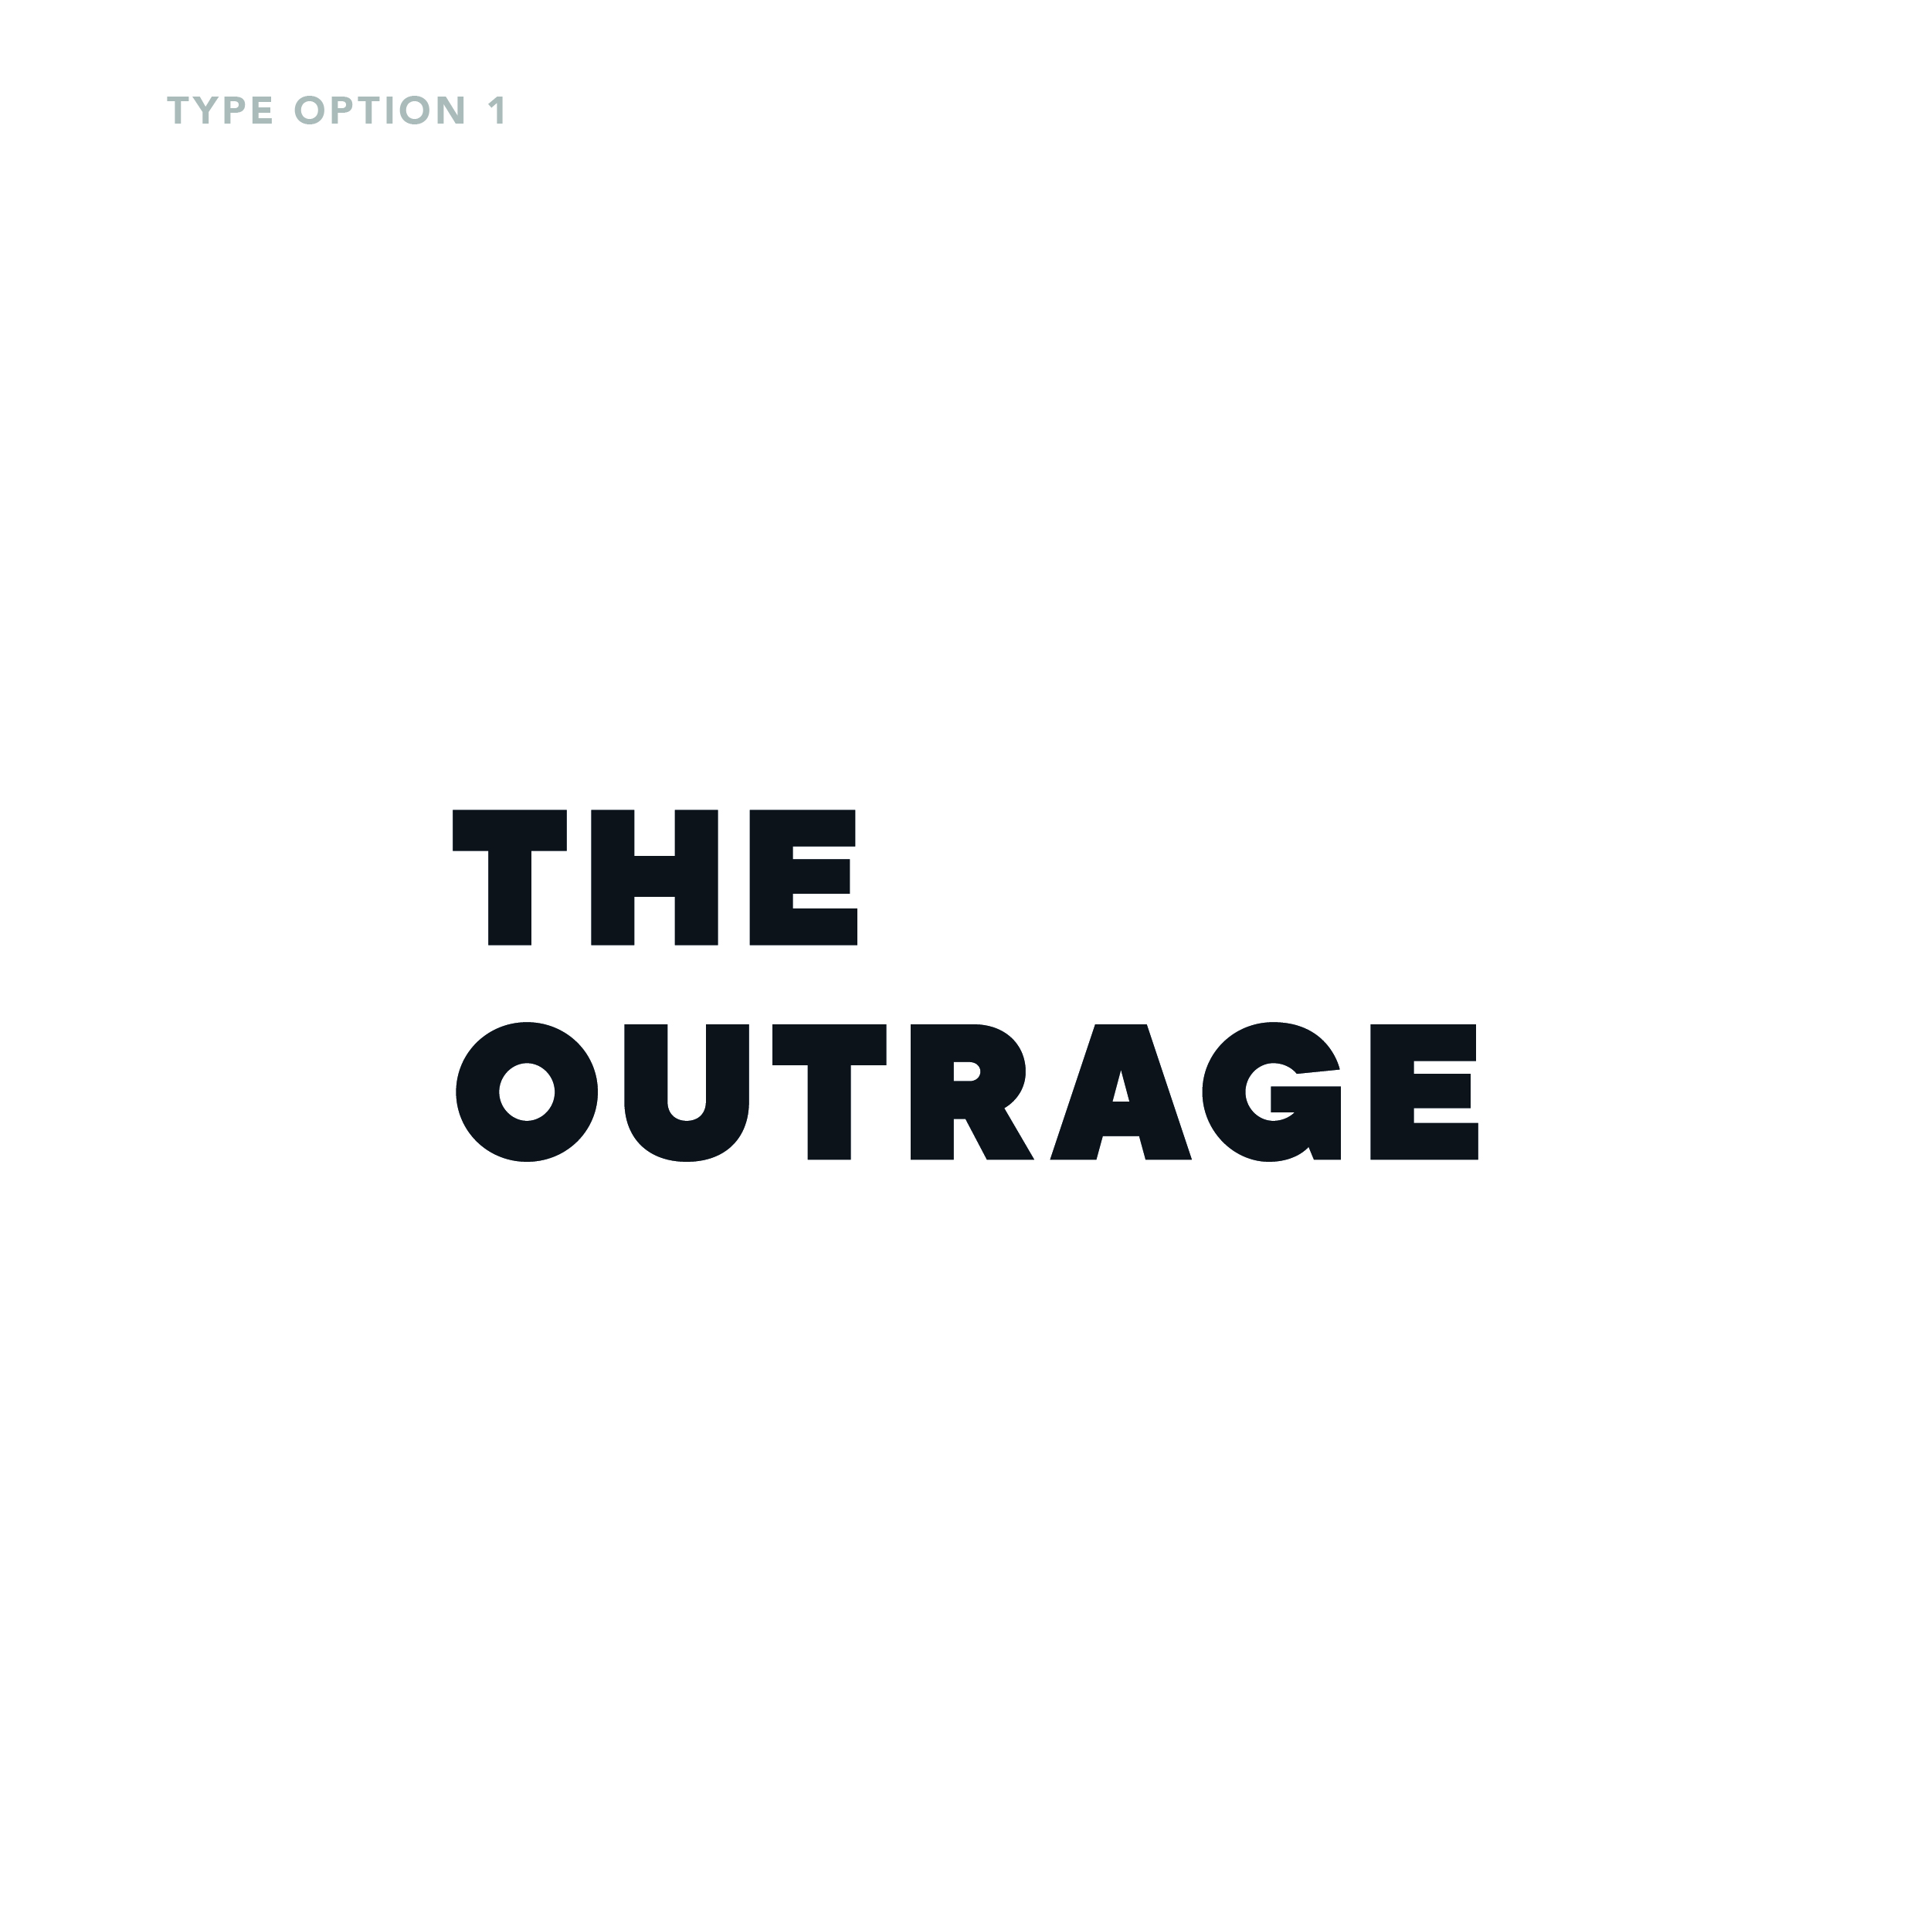 The Outrage_Logo_Type Option 1.jpg